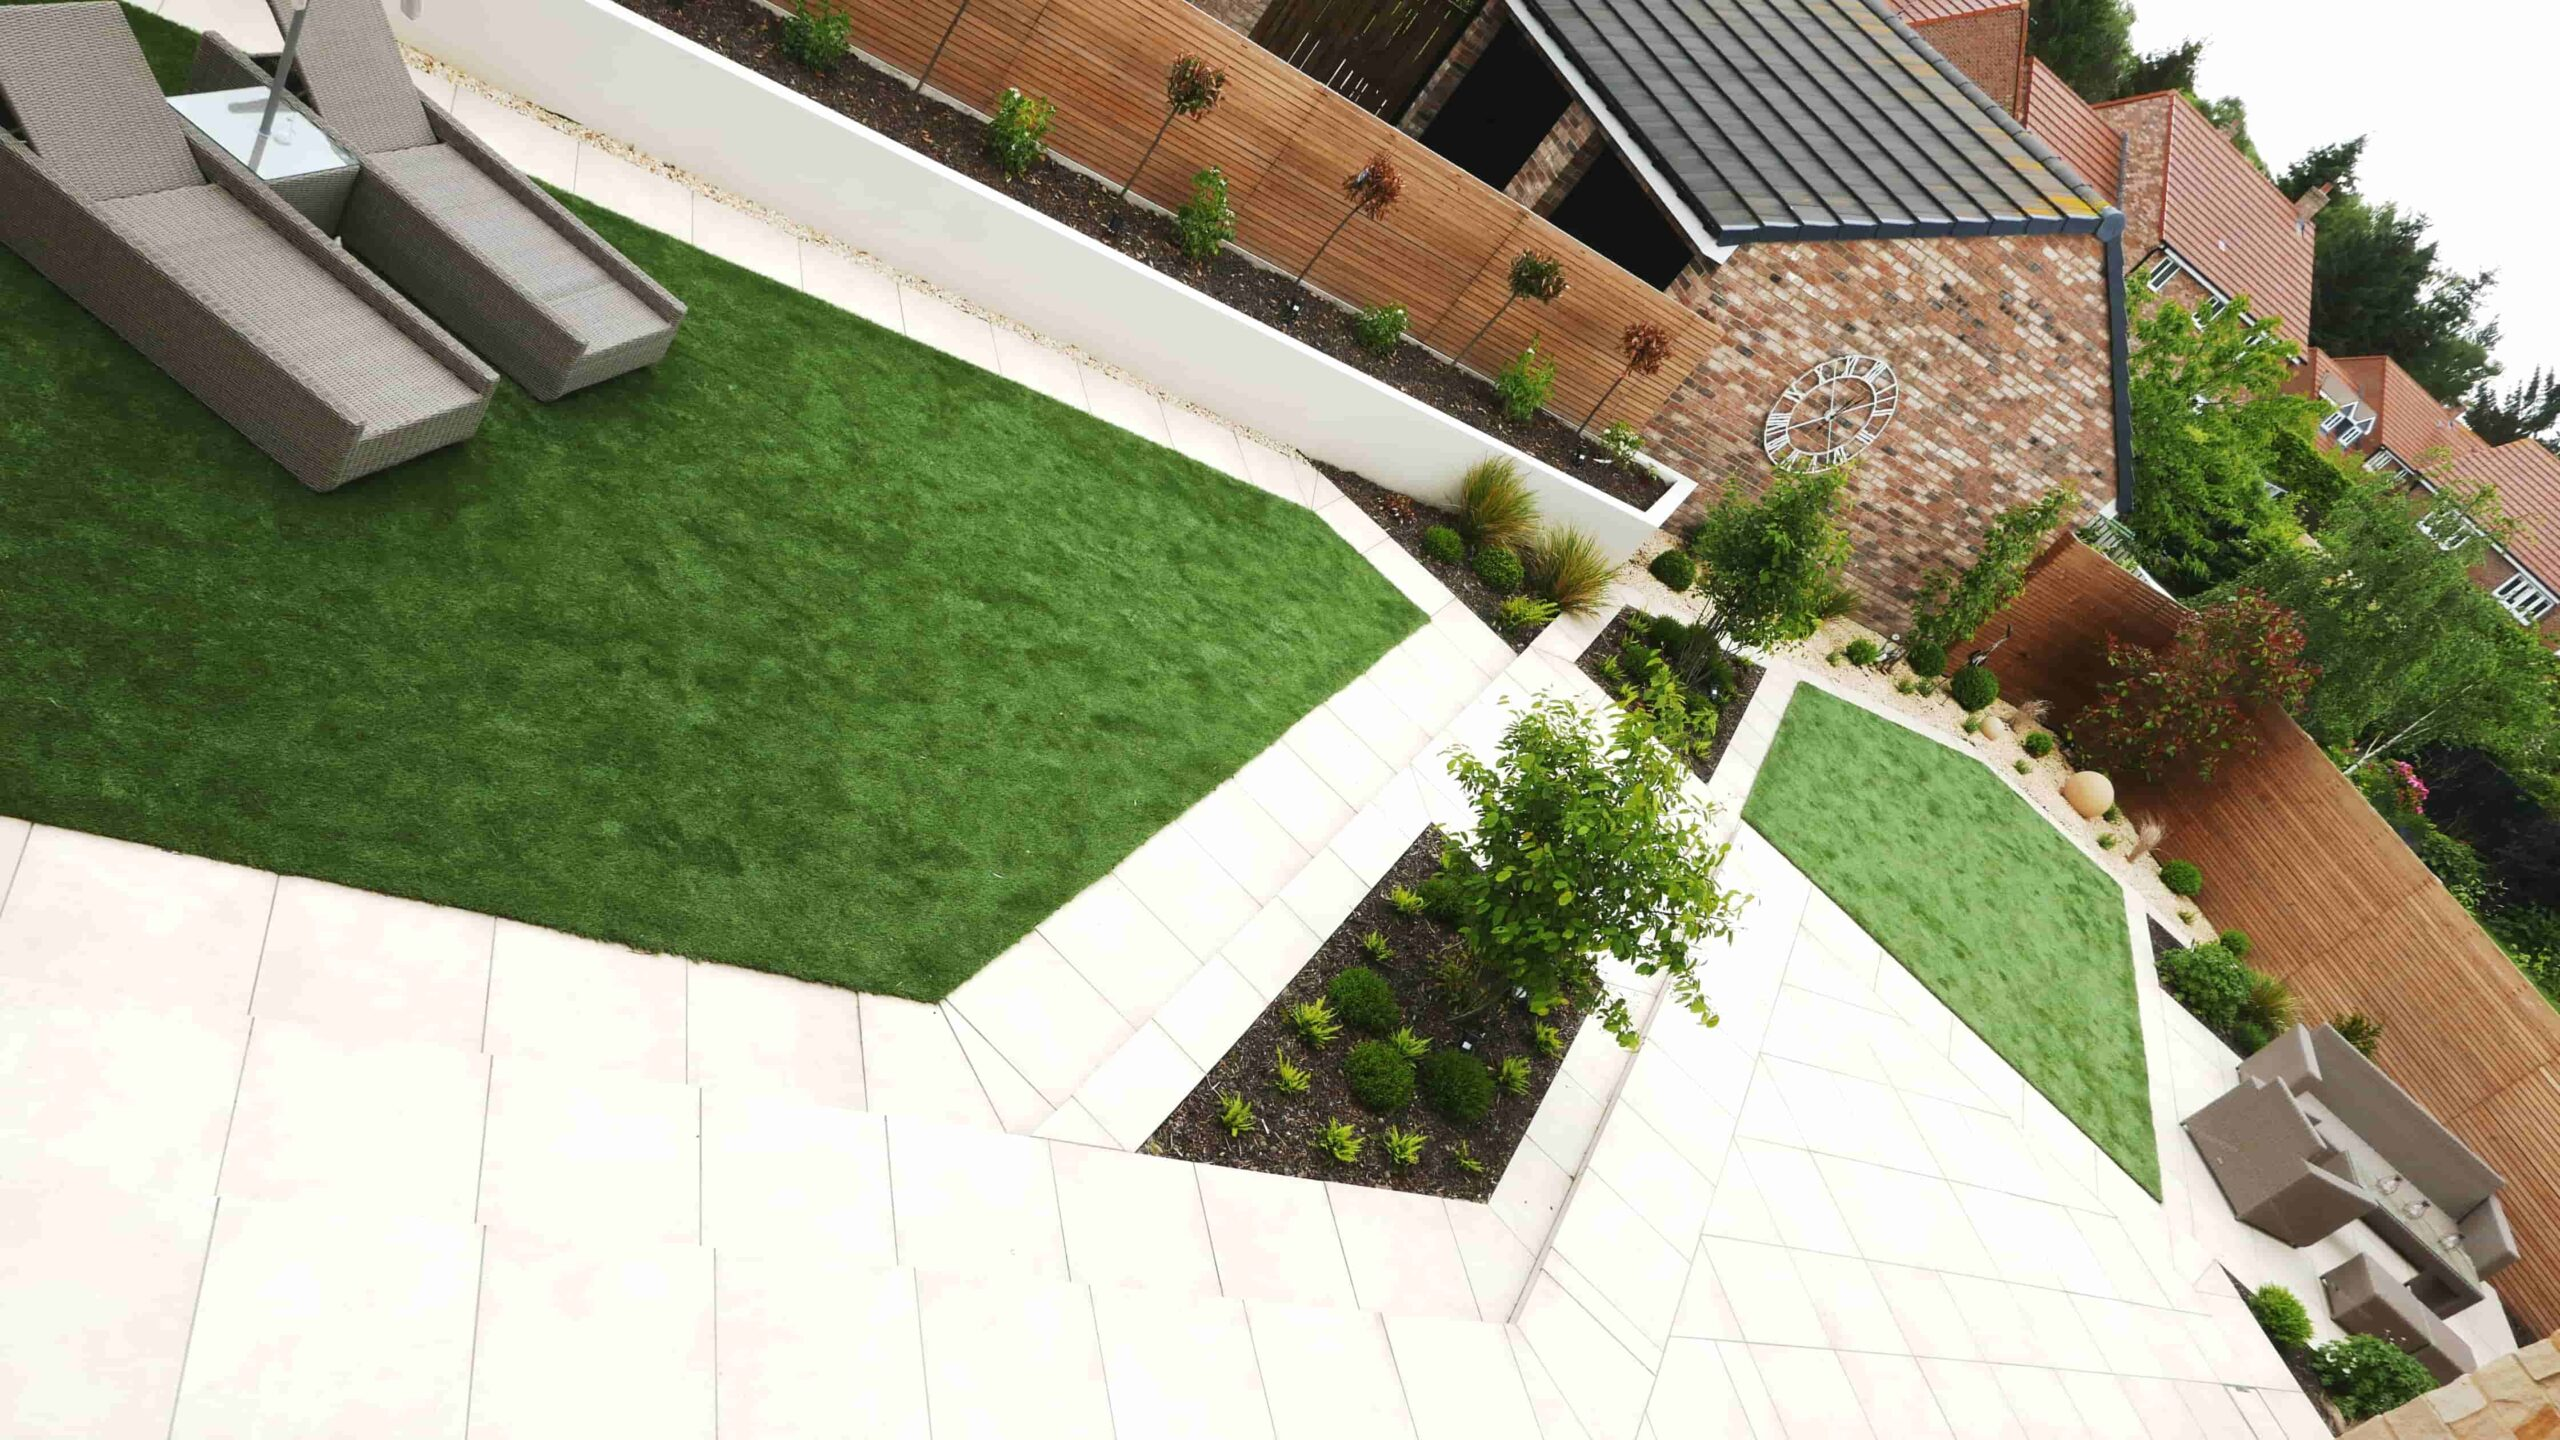 clever-use-of-geometry-for-seating-and-porcelain-paving-corbridge-contemporary-garden